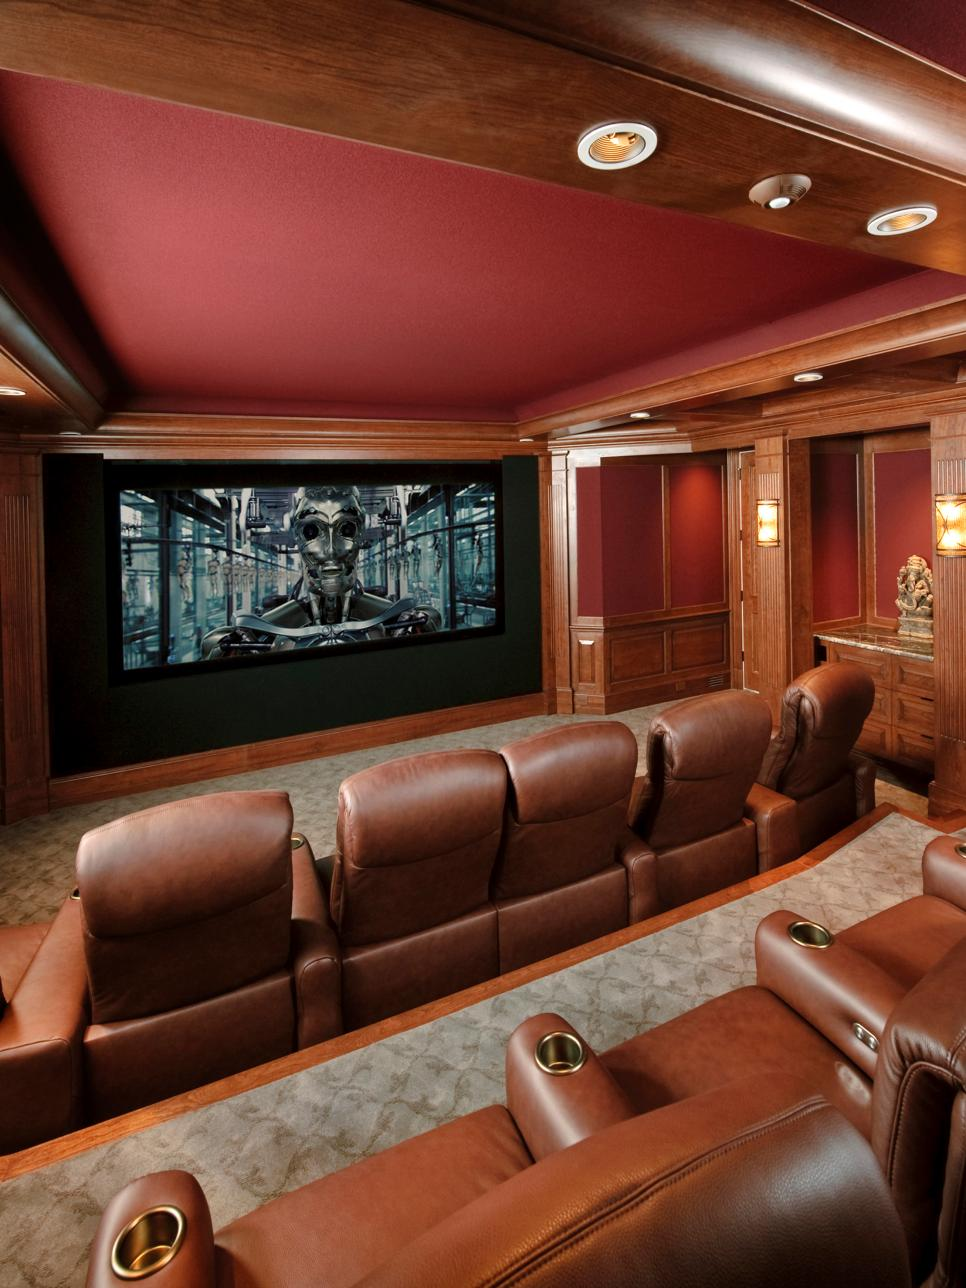 13 High-End Home Theater Designs